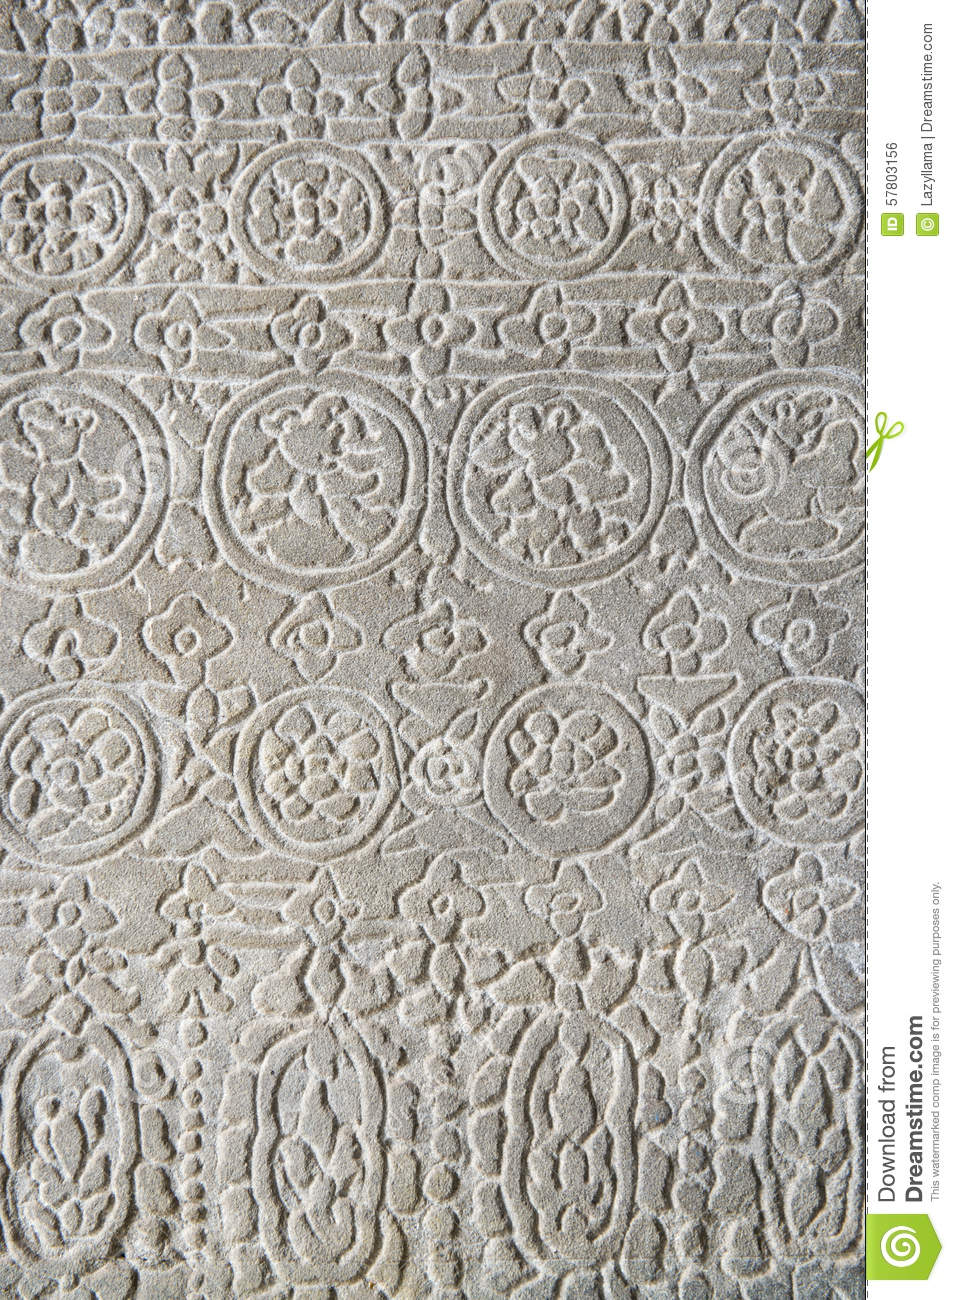 Angkor wat stone carving relief pattern stock photo